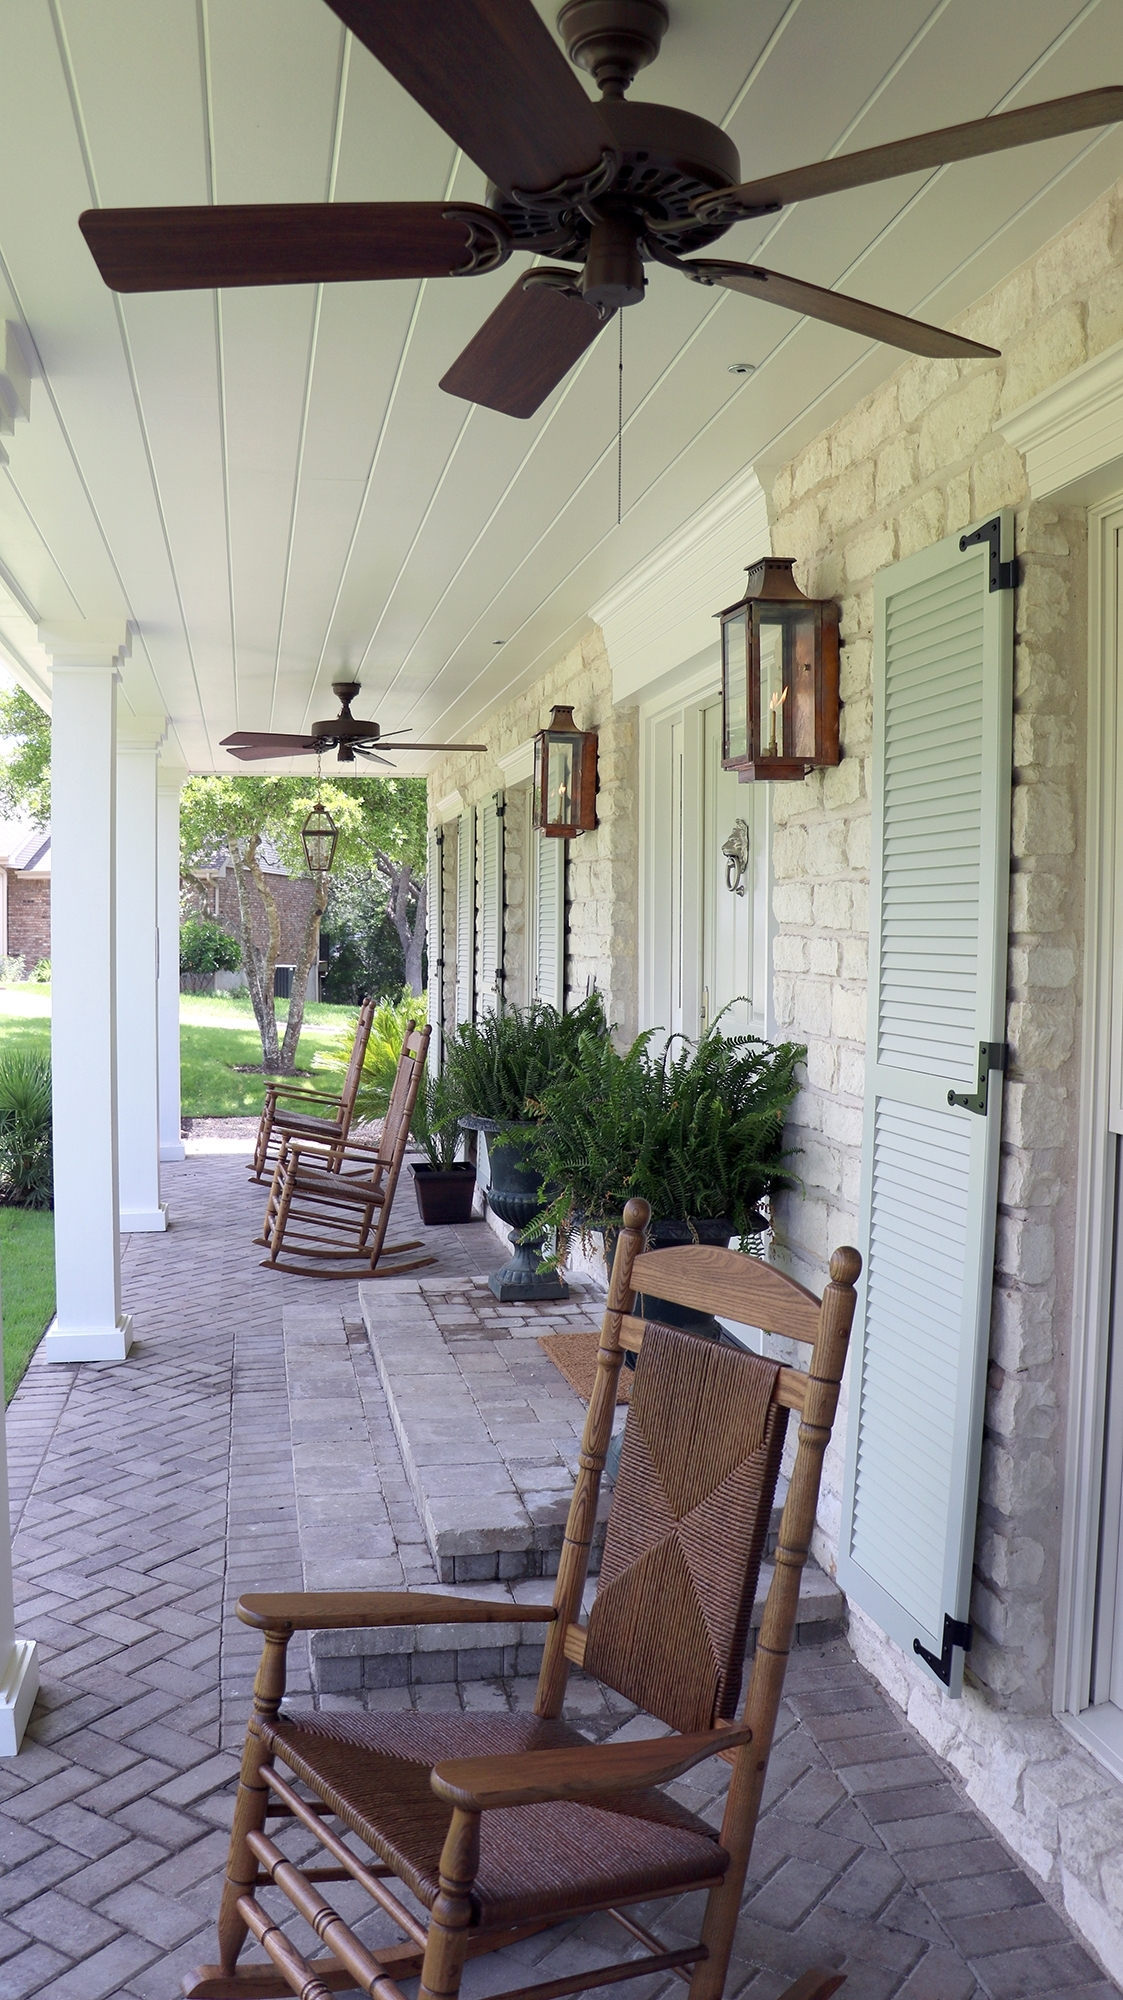 Recent Outdoor Ceiling Fans For Porch Inside Front Porch 4 Hunter Original Outdoor Ceiling Fan – Hunter Fan Blog (View 20 of 20)